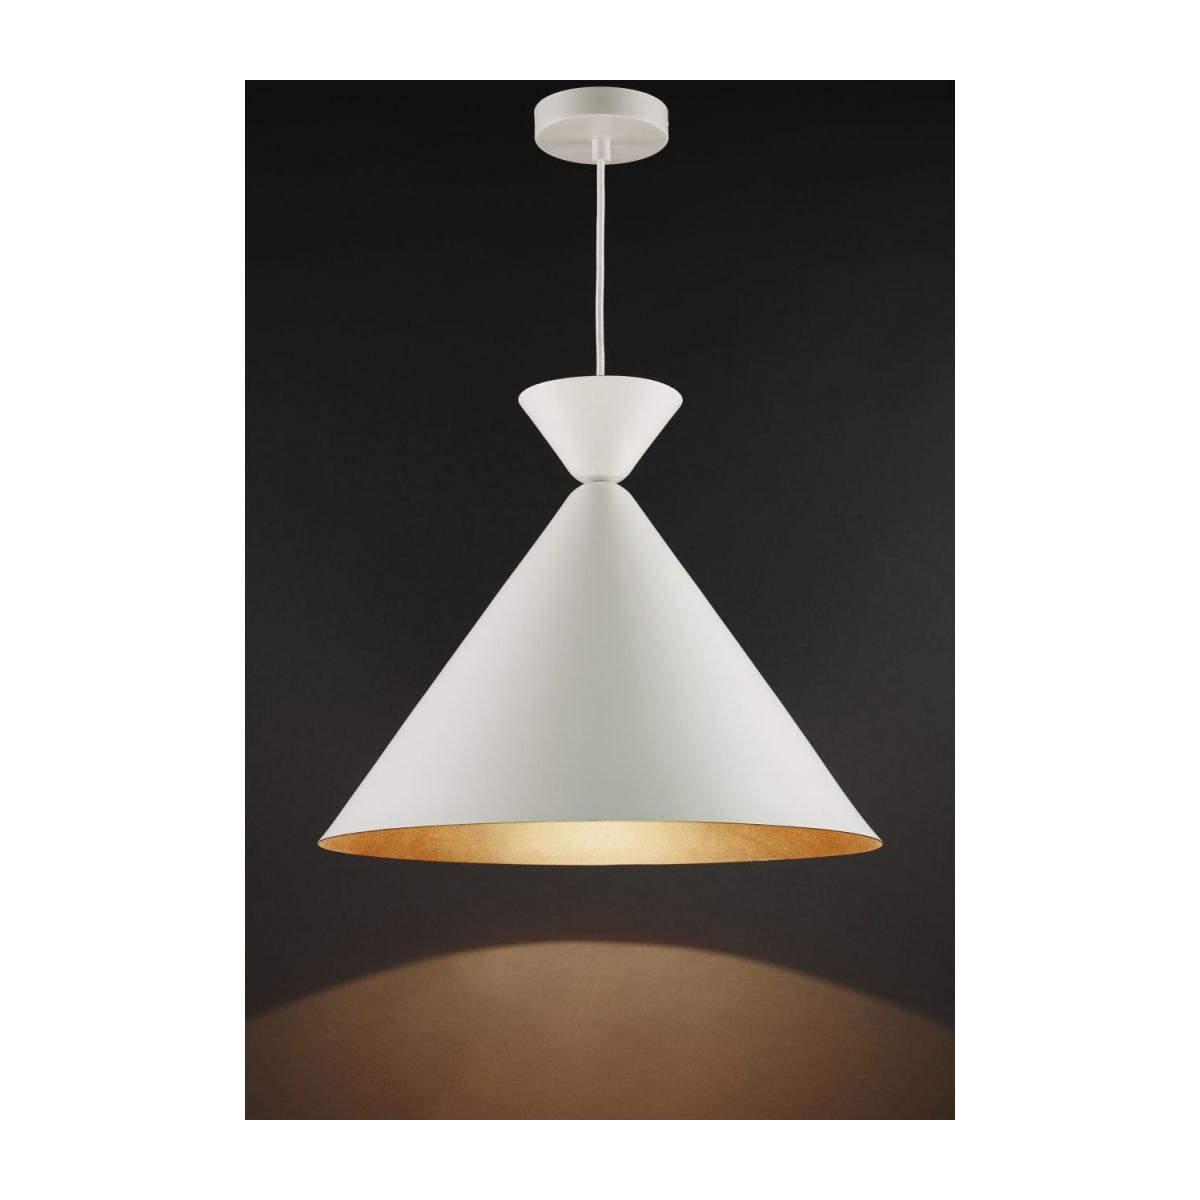 Triangular ceiling lamp, white and copper n°2